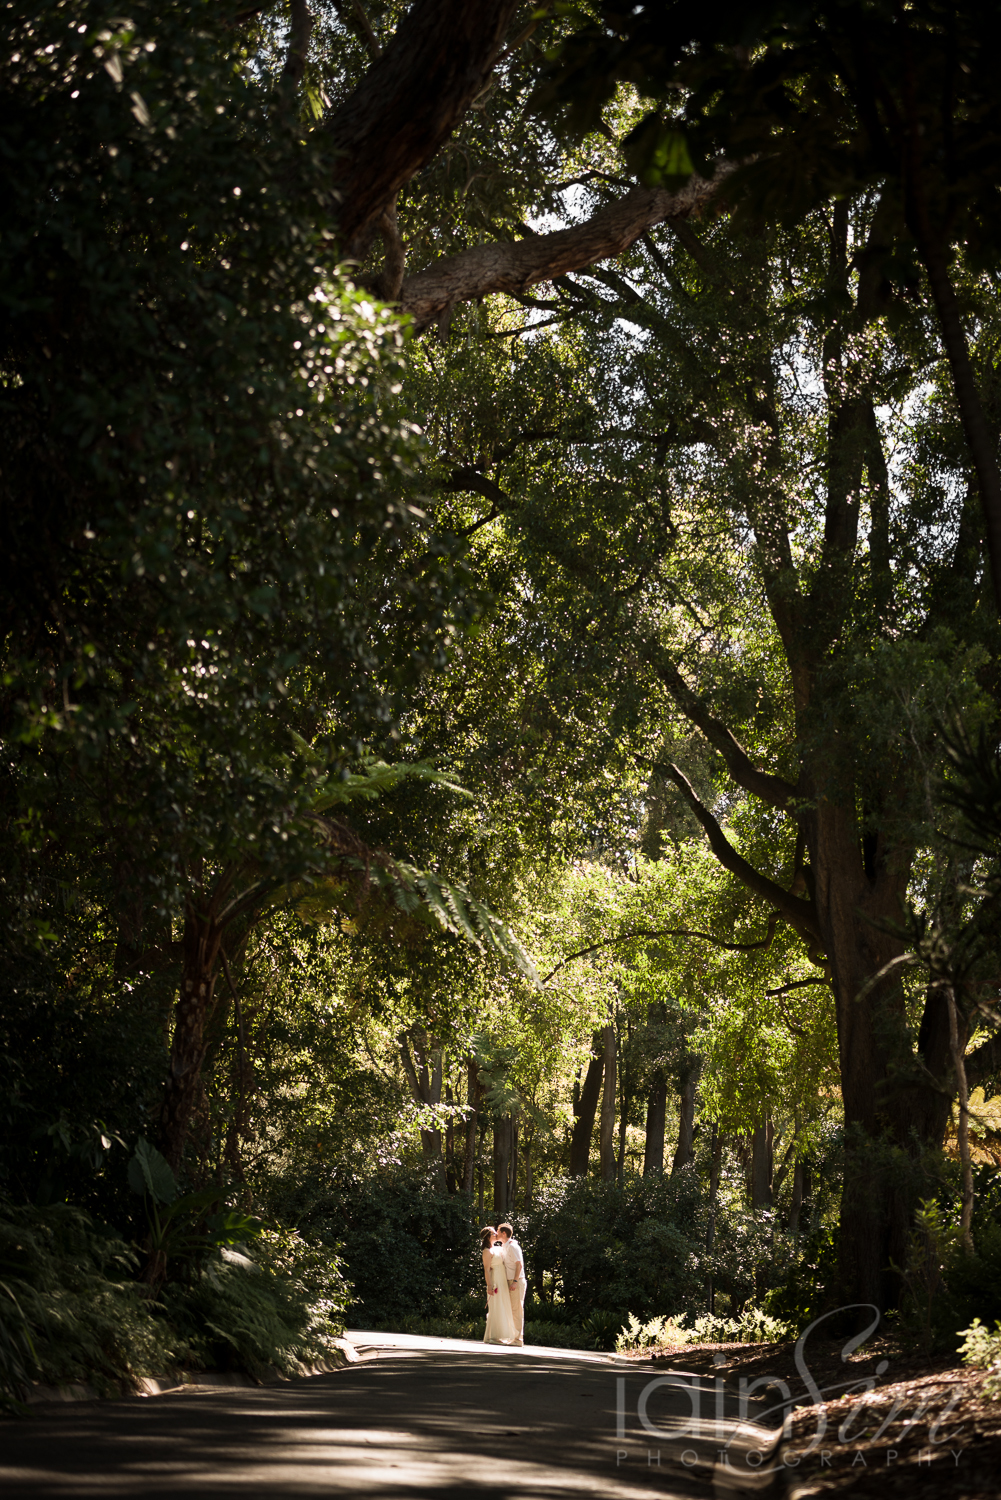 Eloping in the Botanic Gardens by Iain Sim Photography